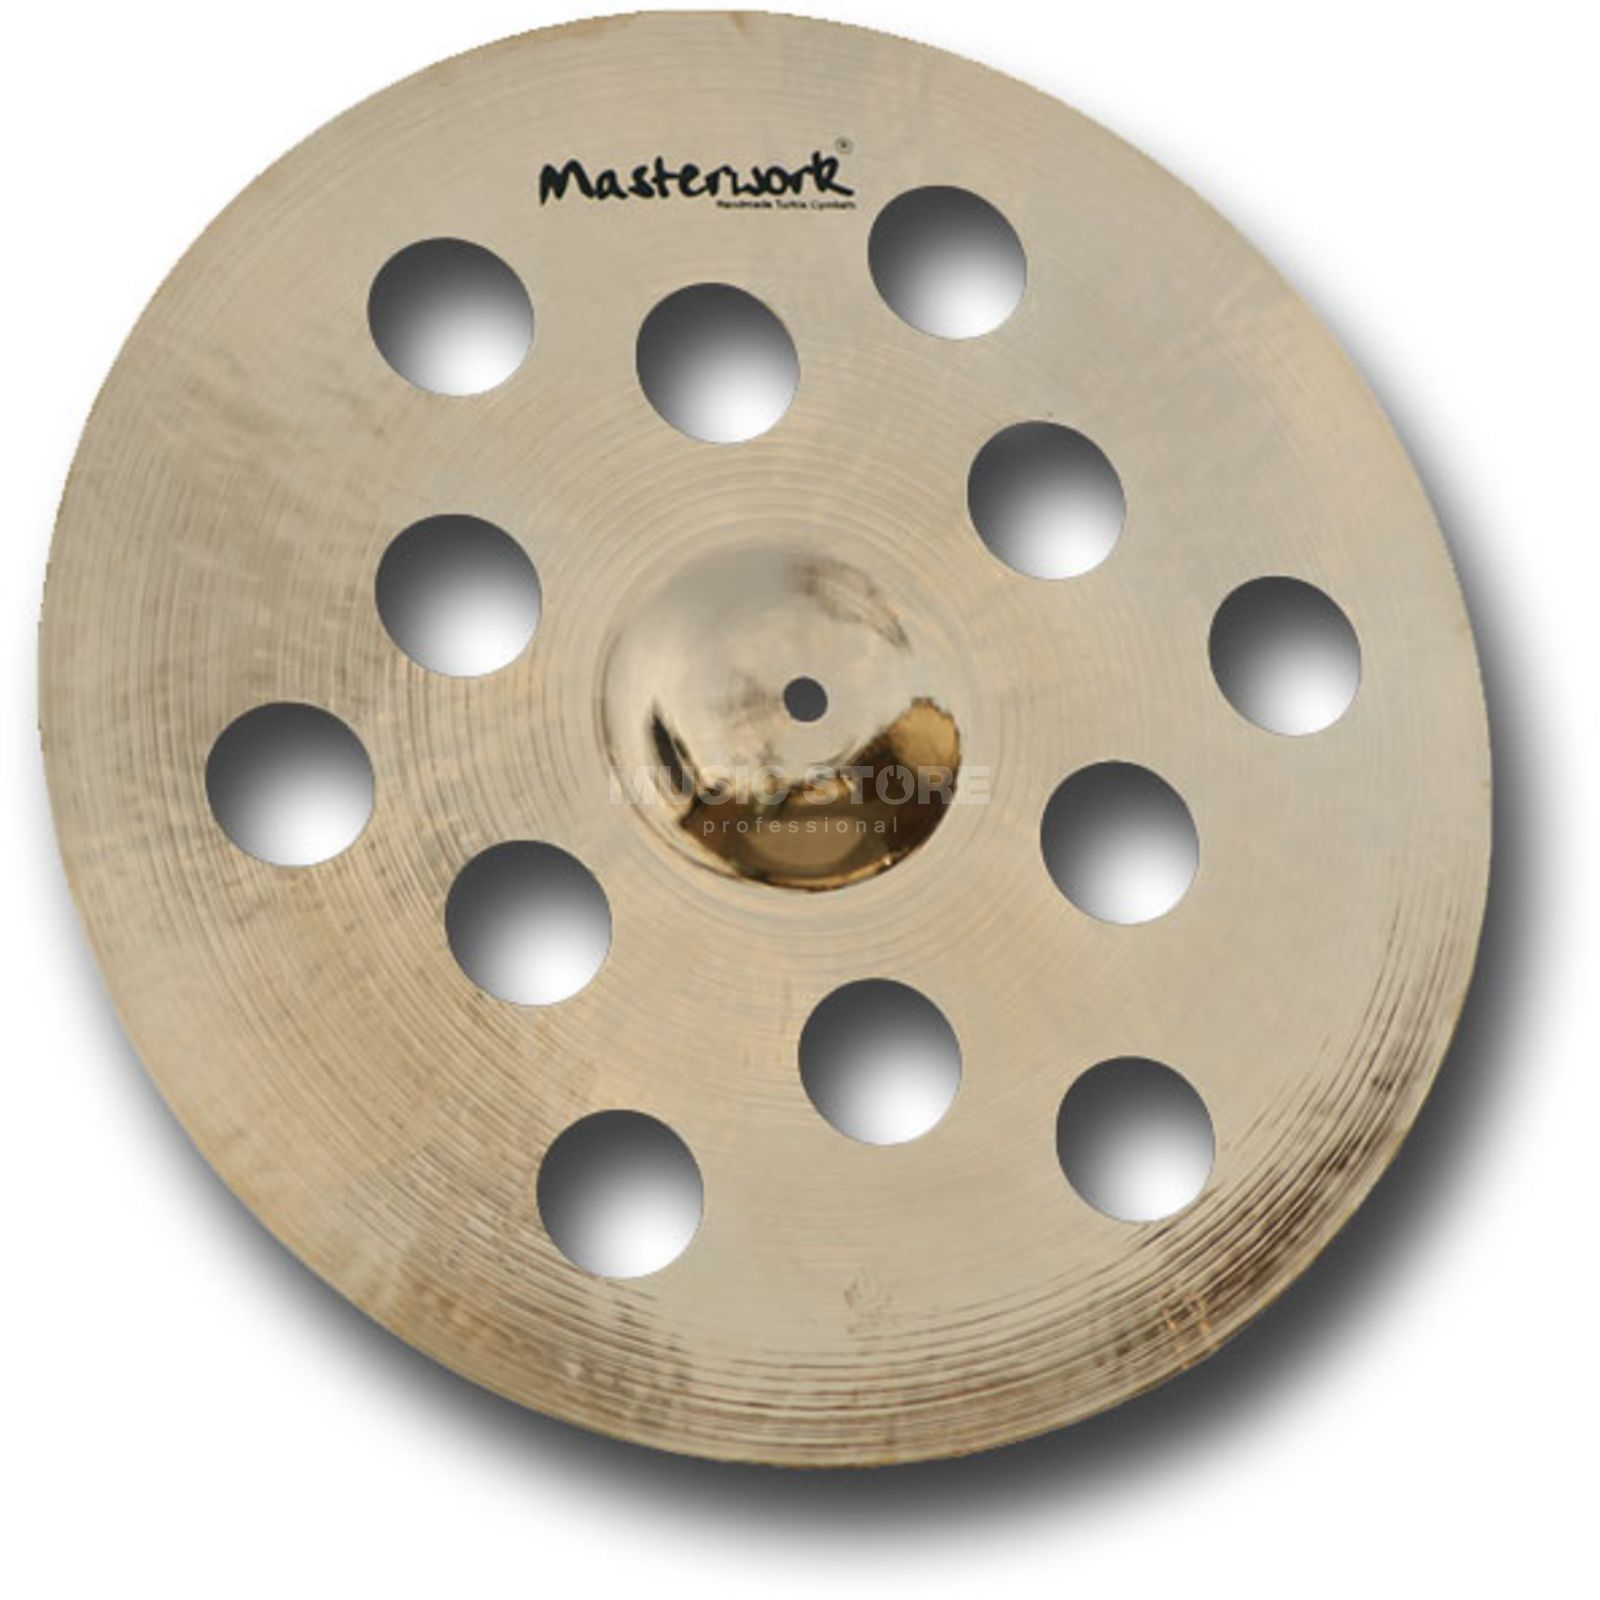 "Masterwork Resonant FX Crash 17"", Brilliant Finish Imagem do produto"